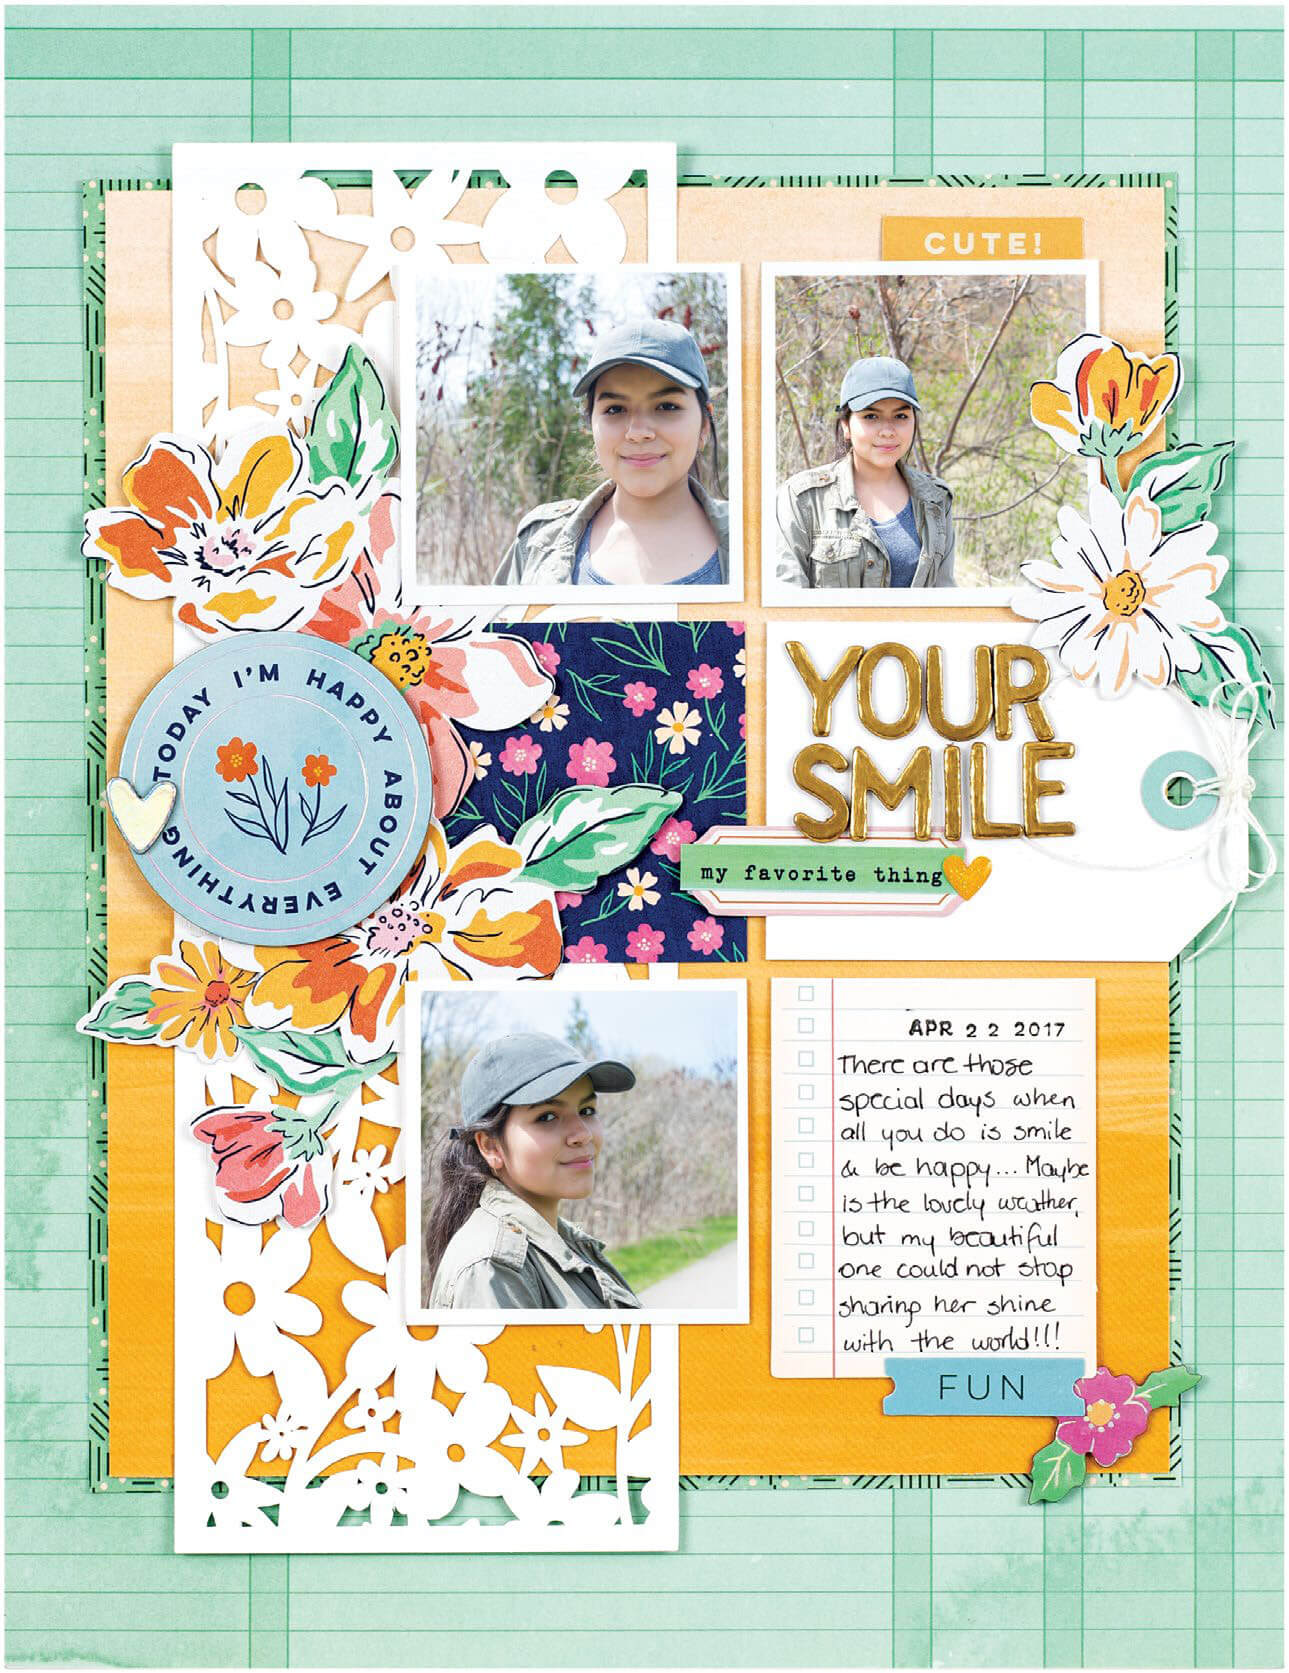 Scrapbook & Cards Today - Spring 2020 - Your Smile layout by Nathalie Desousa